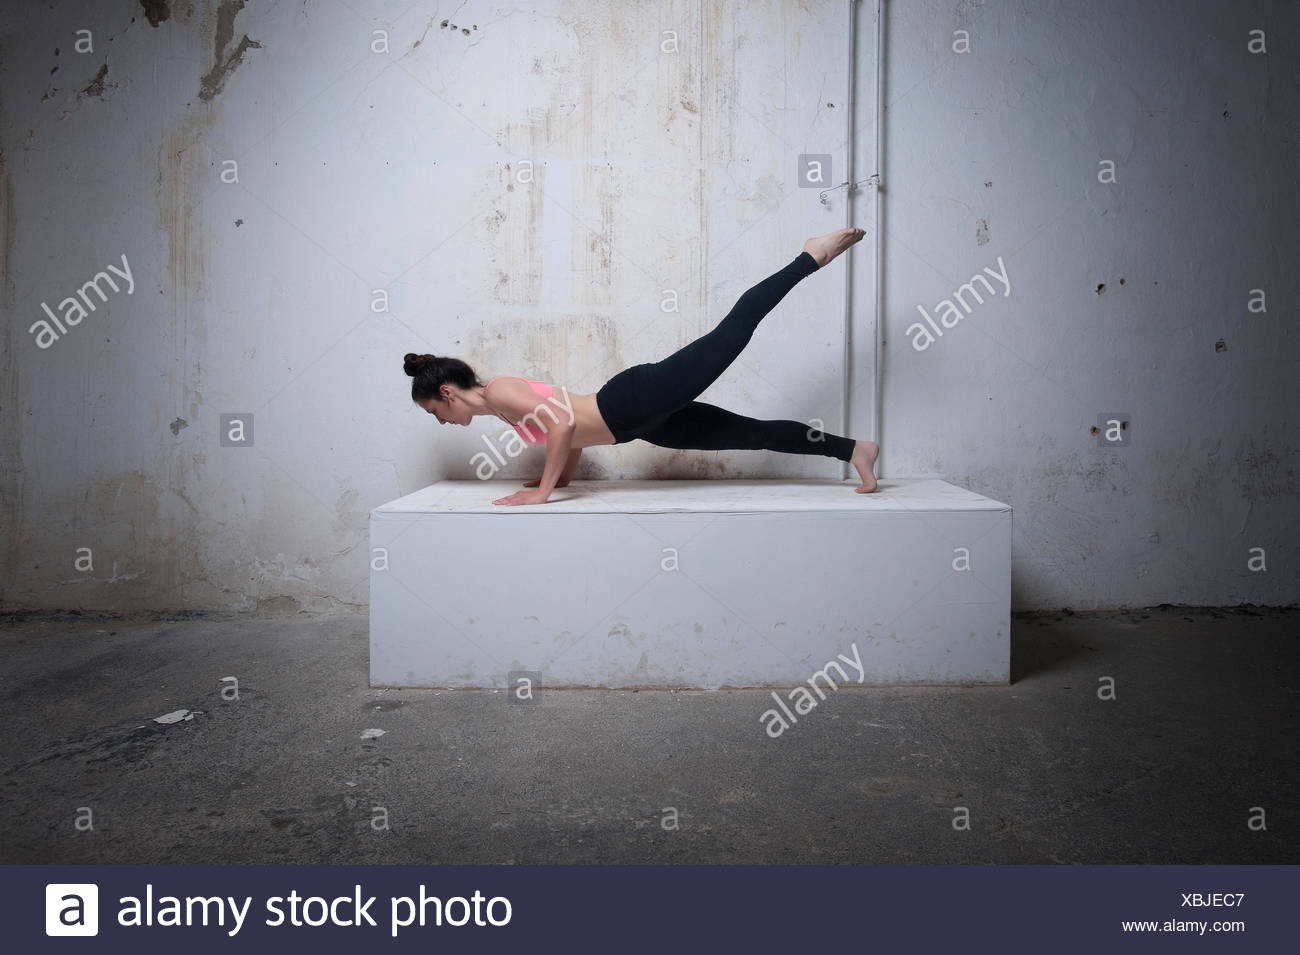 Mid adult woman practicing plank pose on concrete block, Munich, Bavaria, Germany - Stock Image